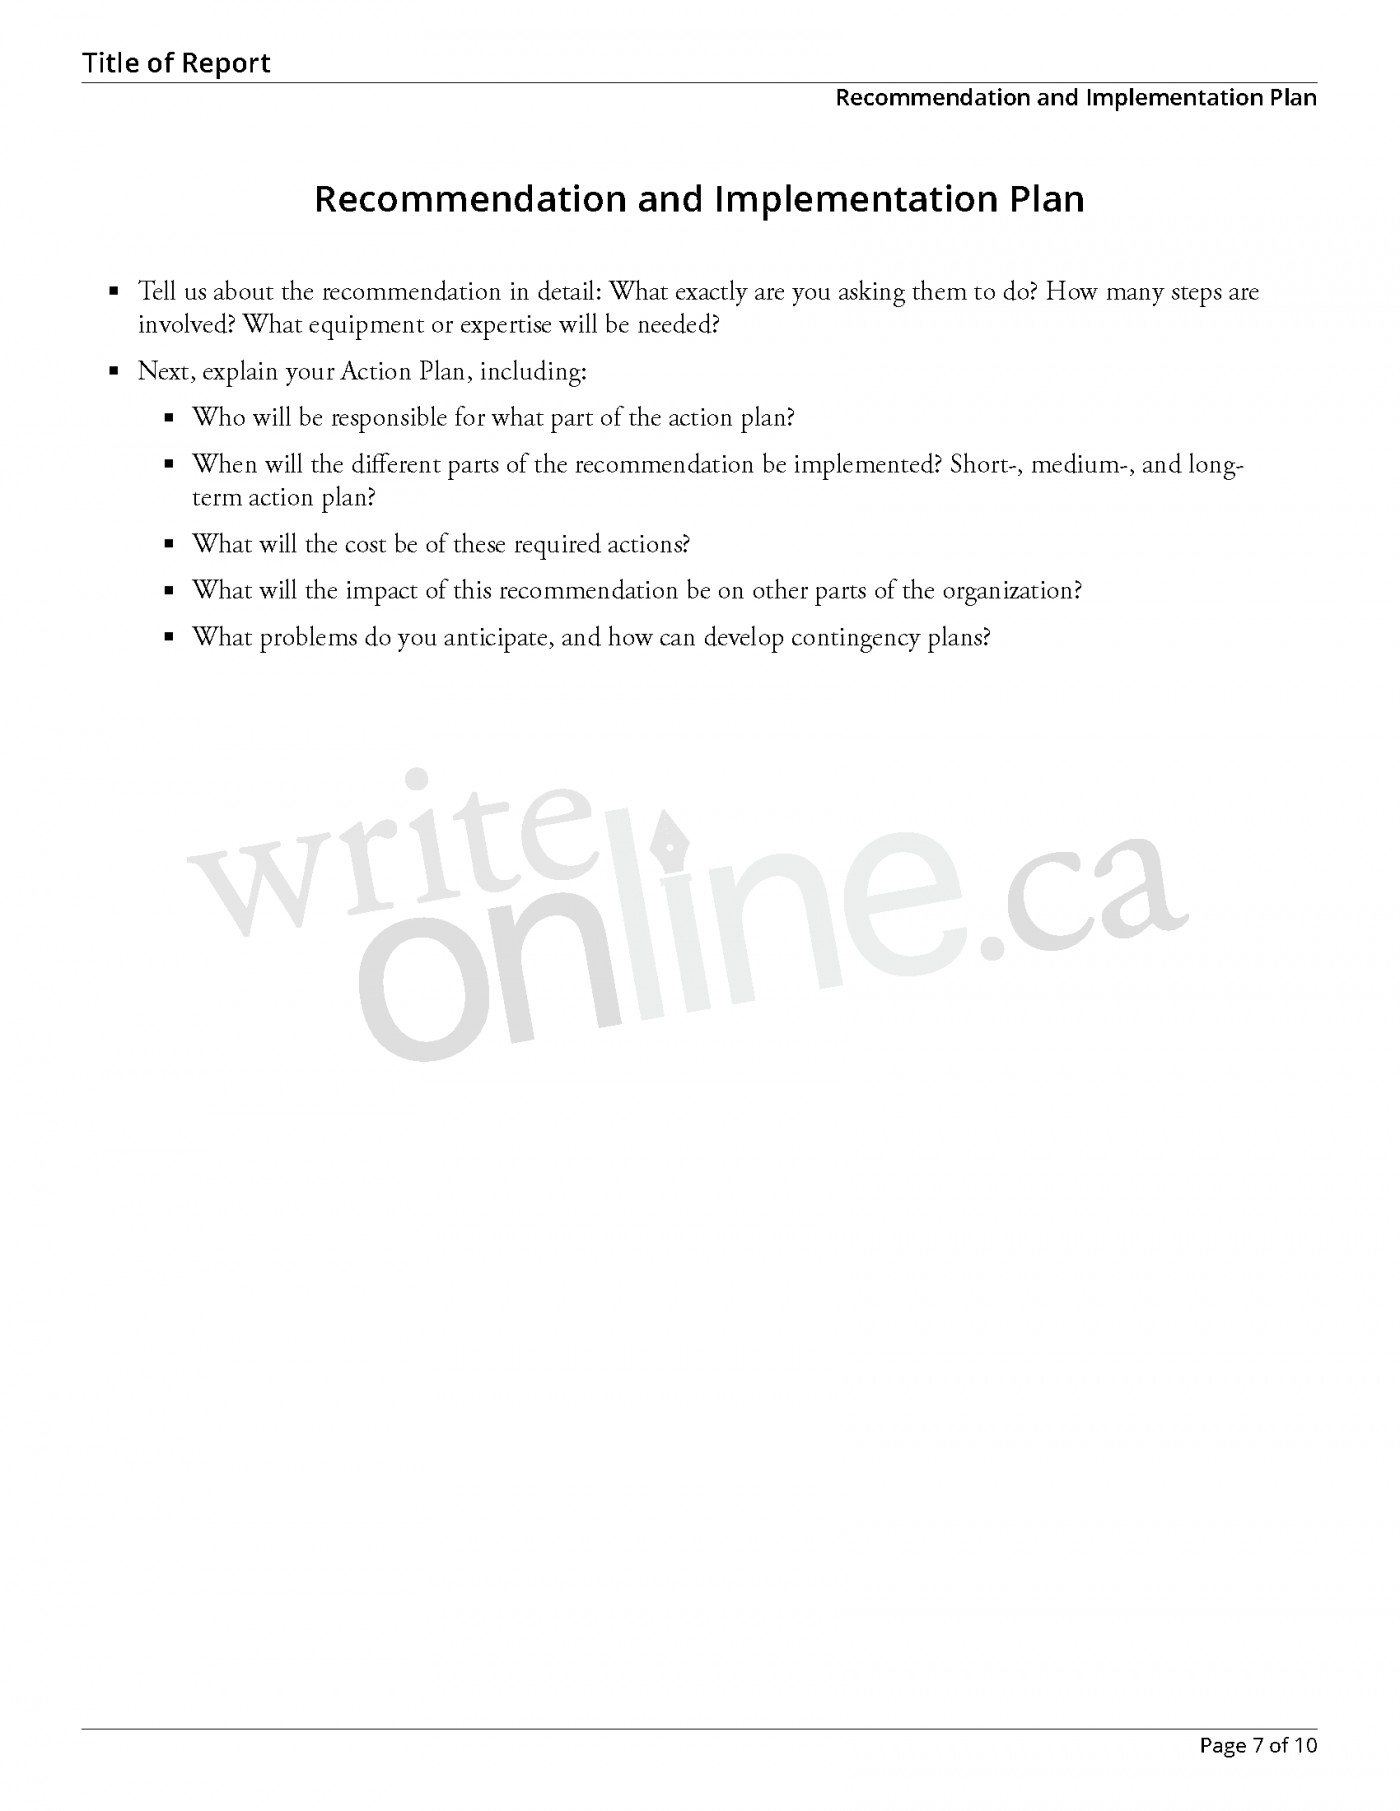 005 Casestudy Sample Page 07 Research Paper Parts Of High Shocking A School For Students 1400